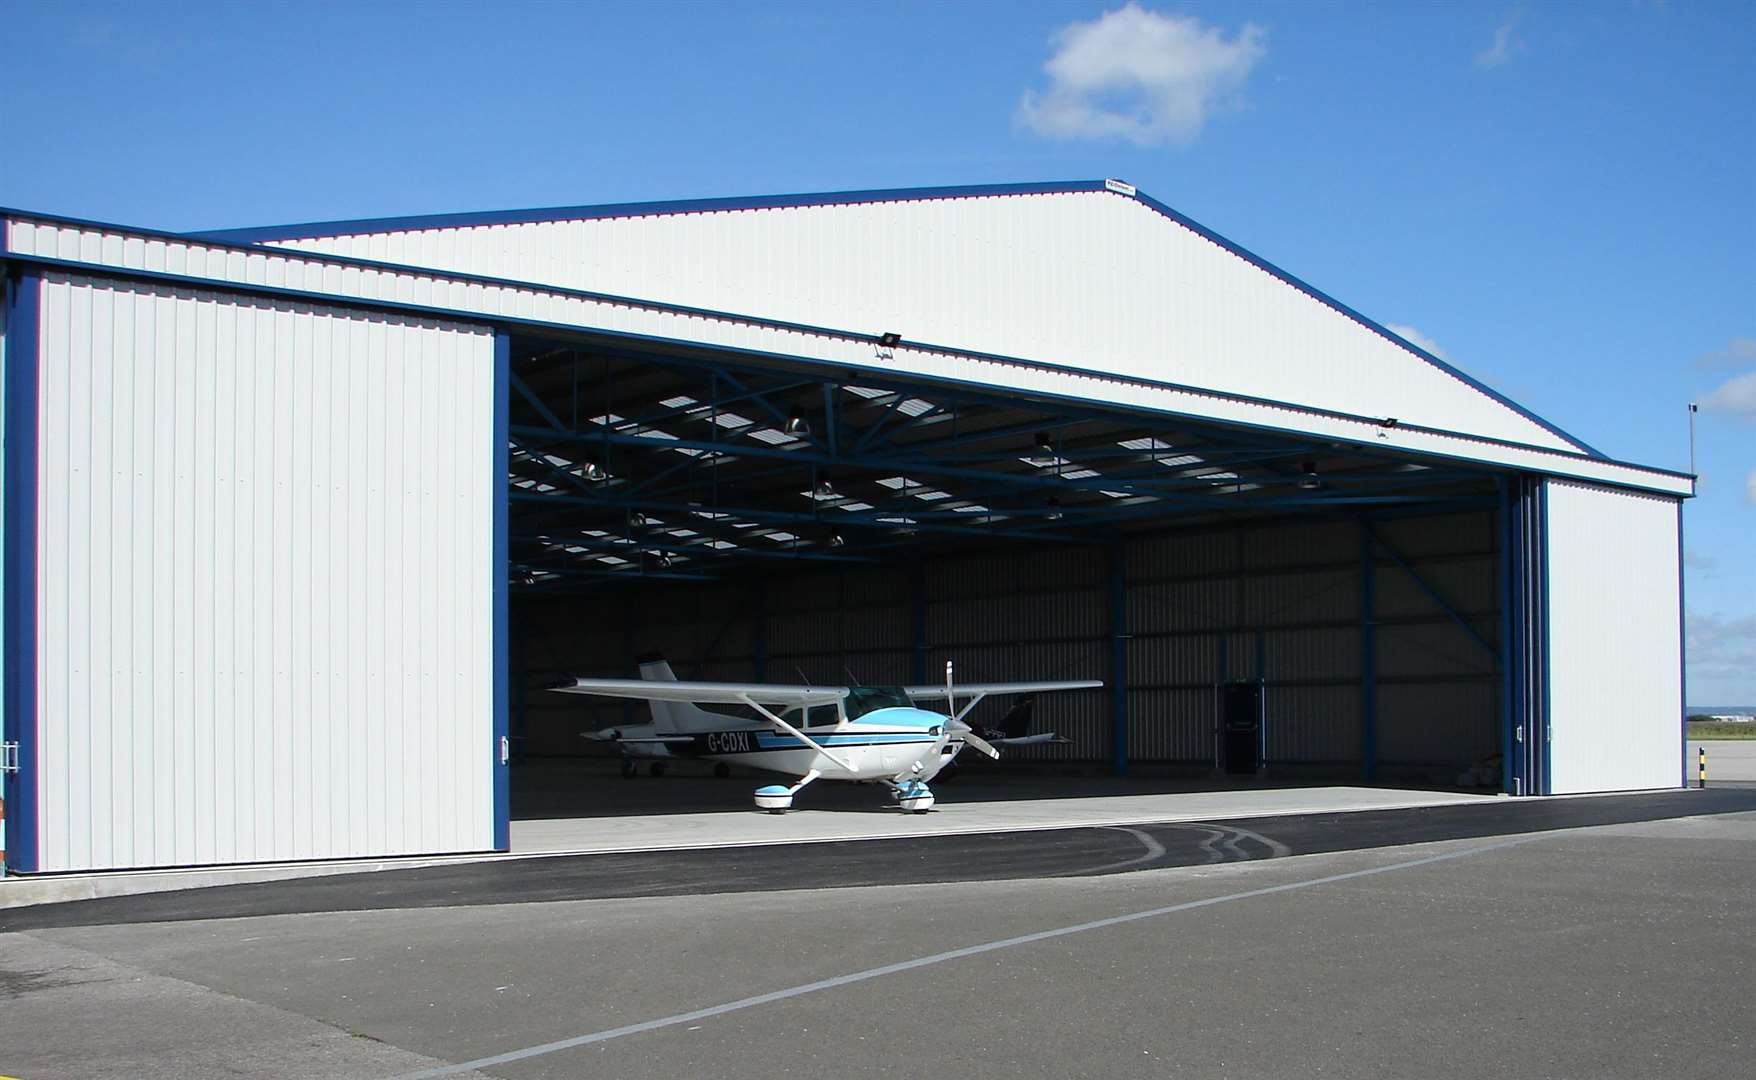 The new airport hanger will host one of the four stages. Picture: Lydd Airport